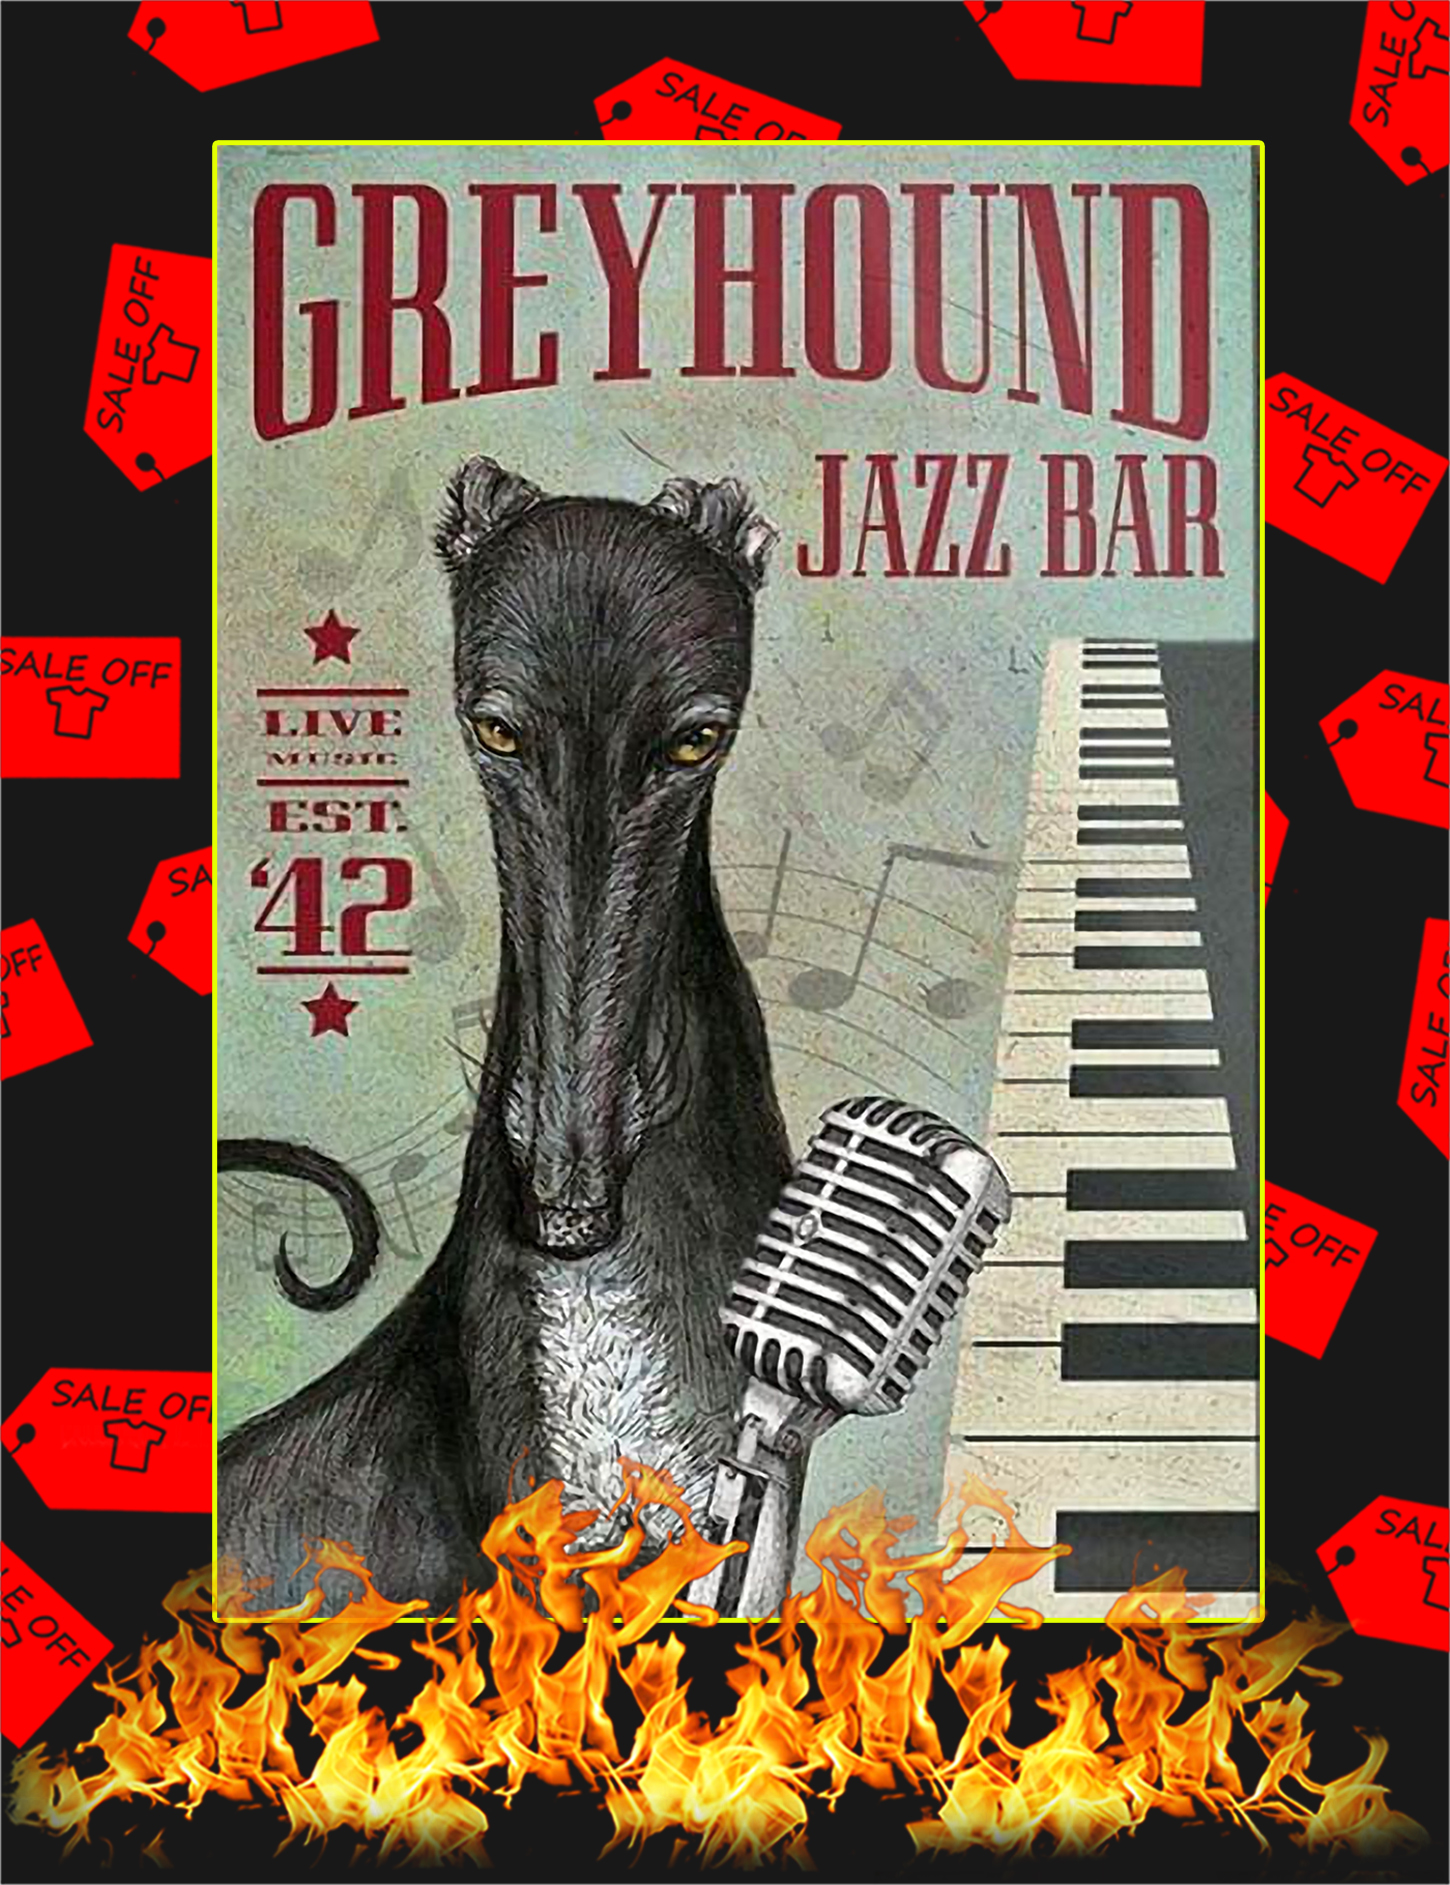 Greyhound Jazz Bar Poster - A1